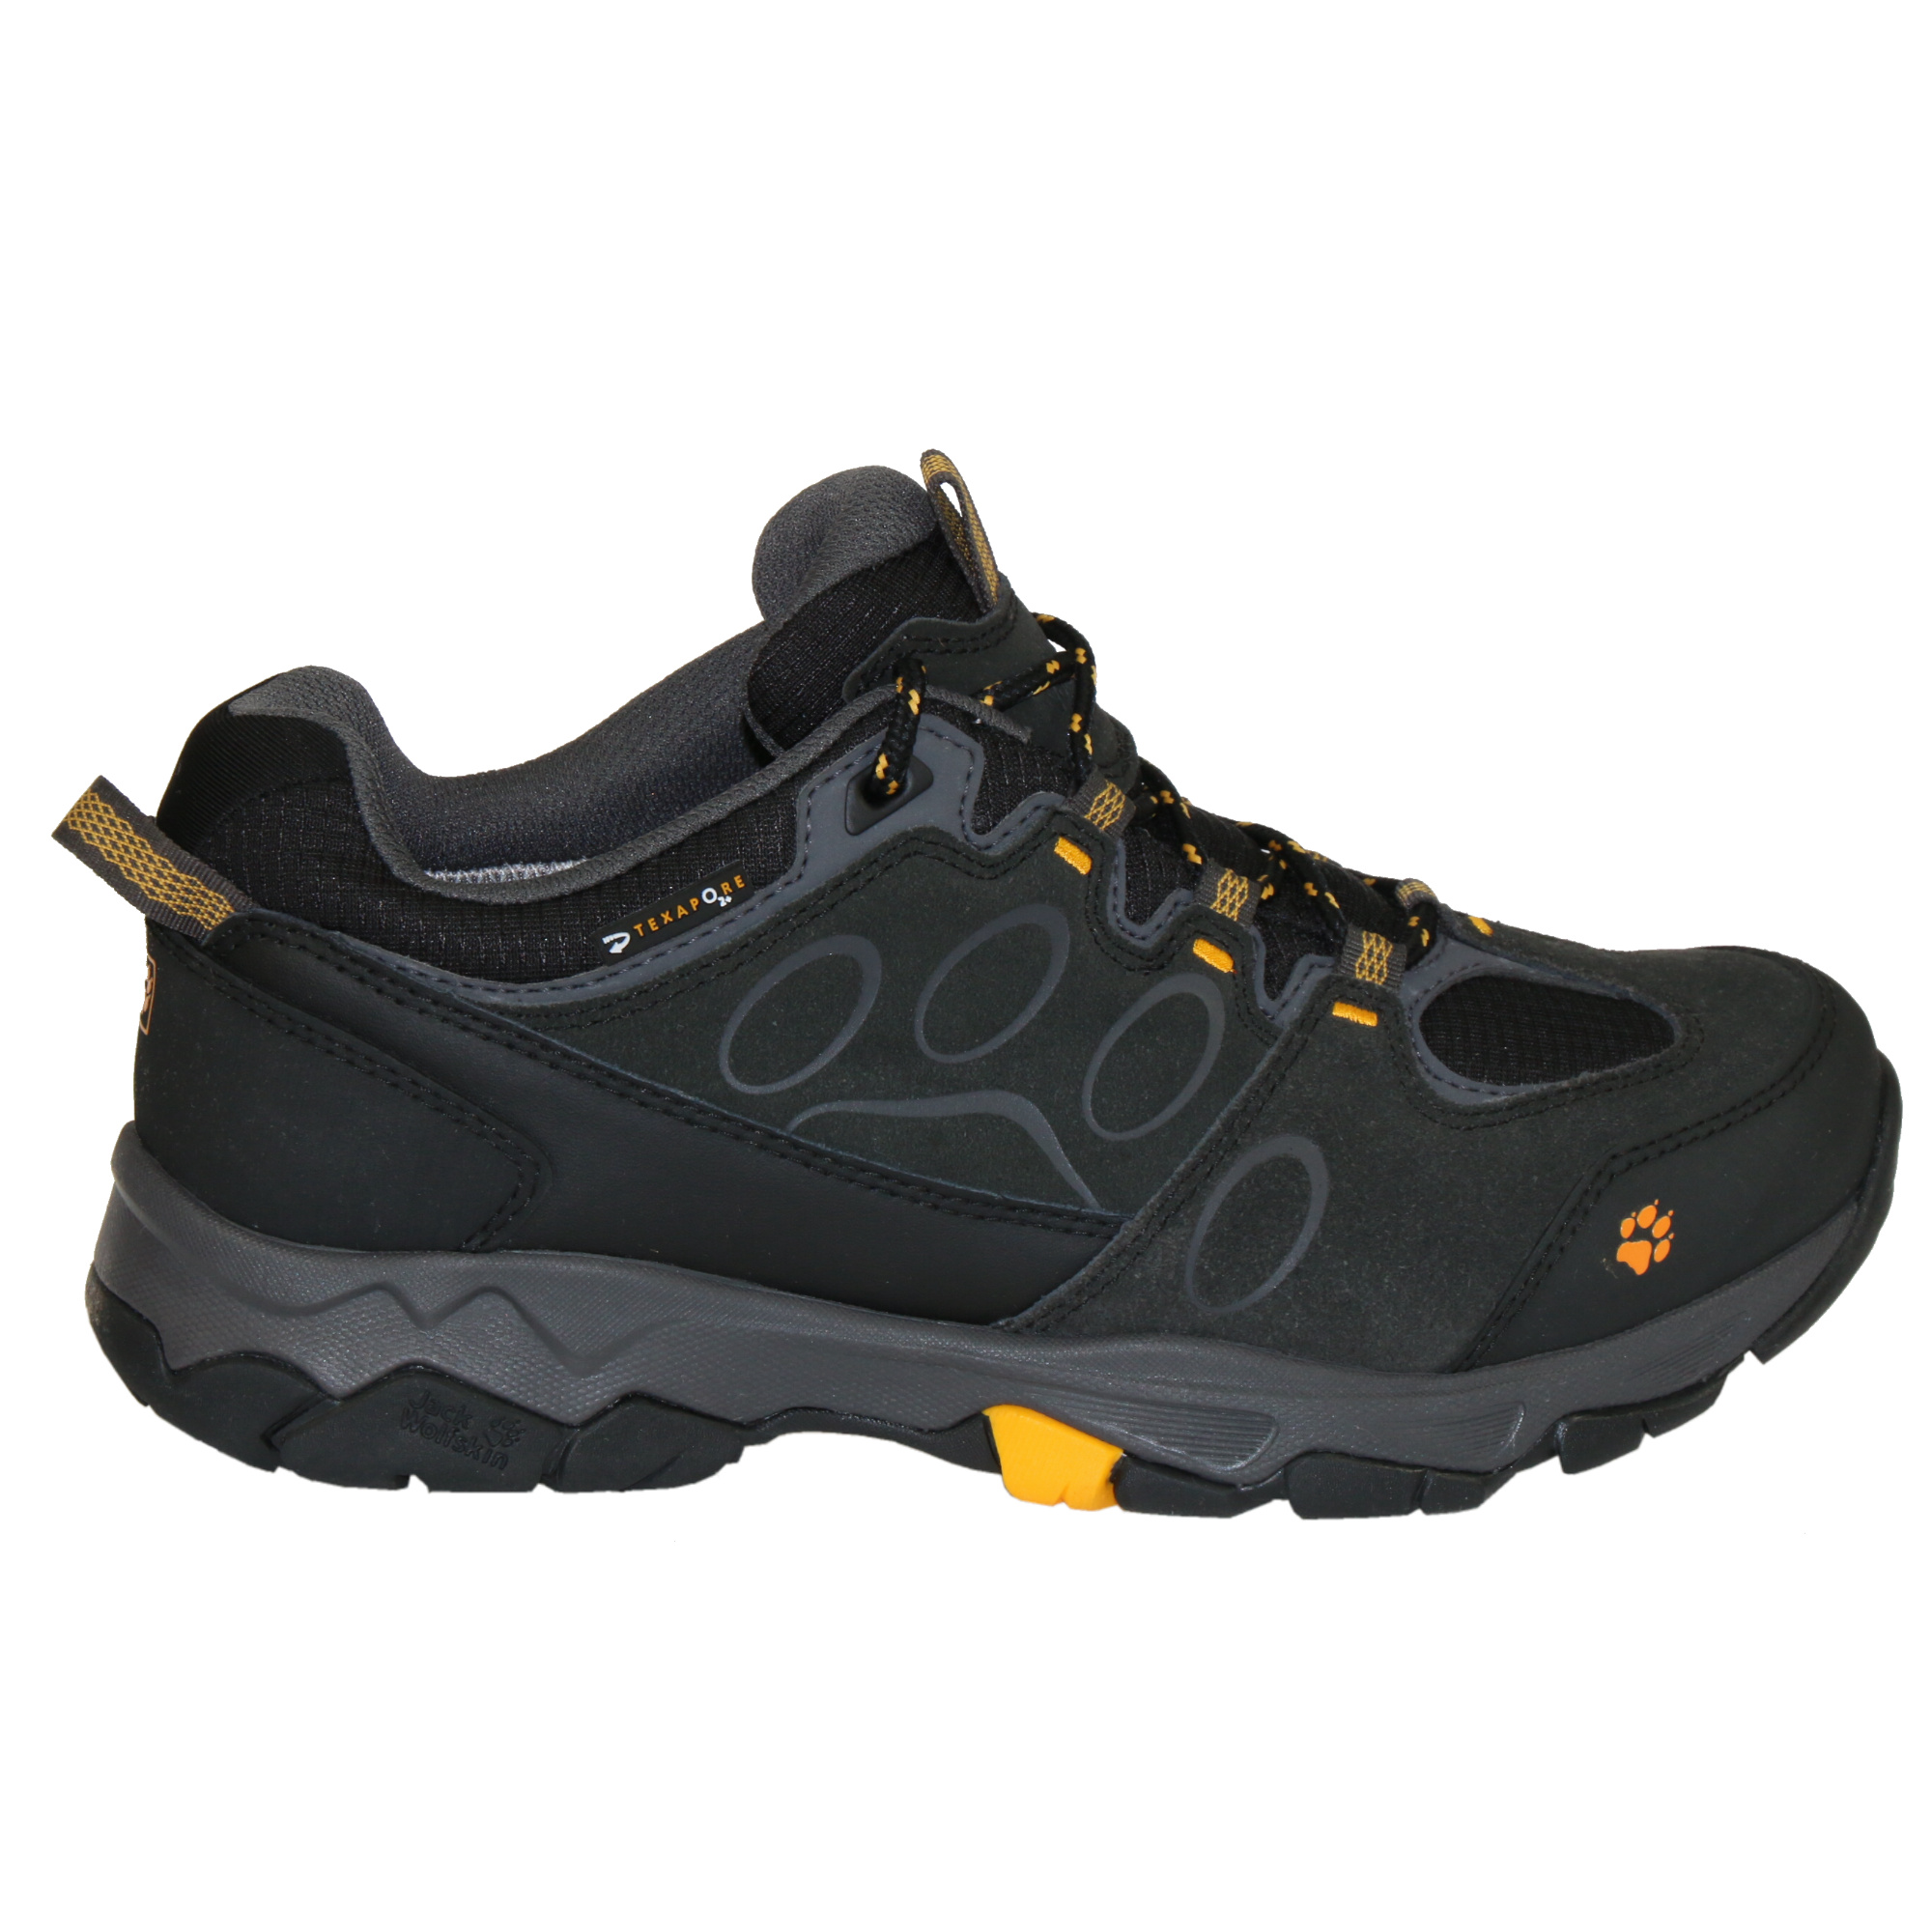 jack wolfskin mountain attack 5 low texapore shoes hiking shoes outdoor men 39 s ebay. Black Bedroom Furniture Sets. Home Design Ideas